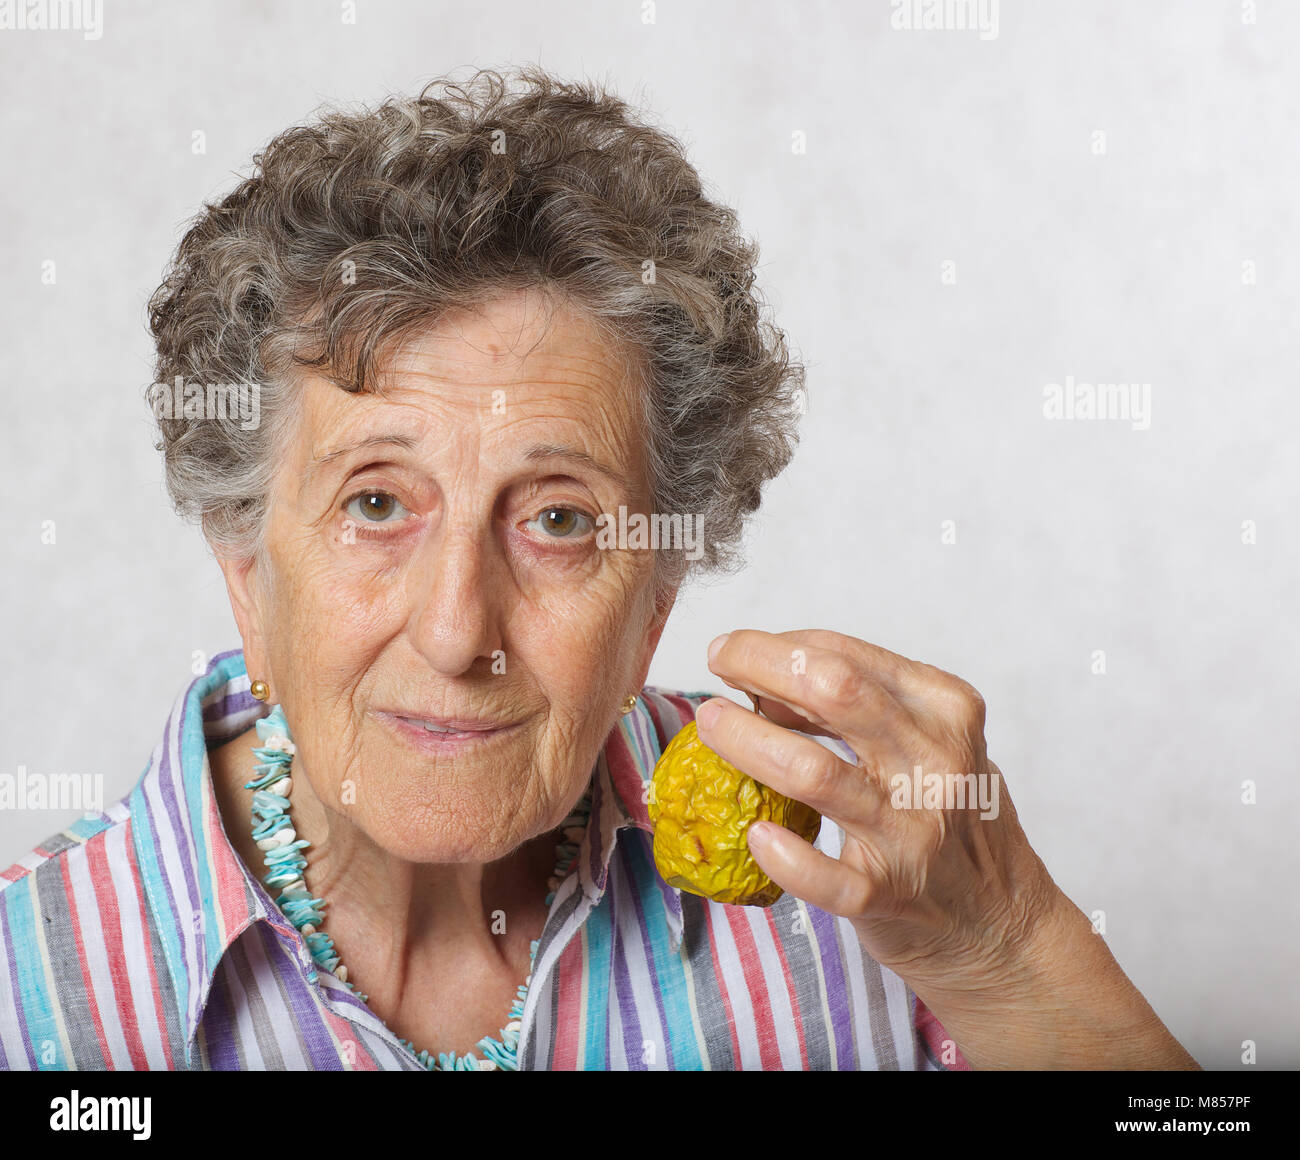 Old woman between 70 and 80 years old and shrivelled apple Stock